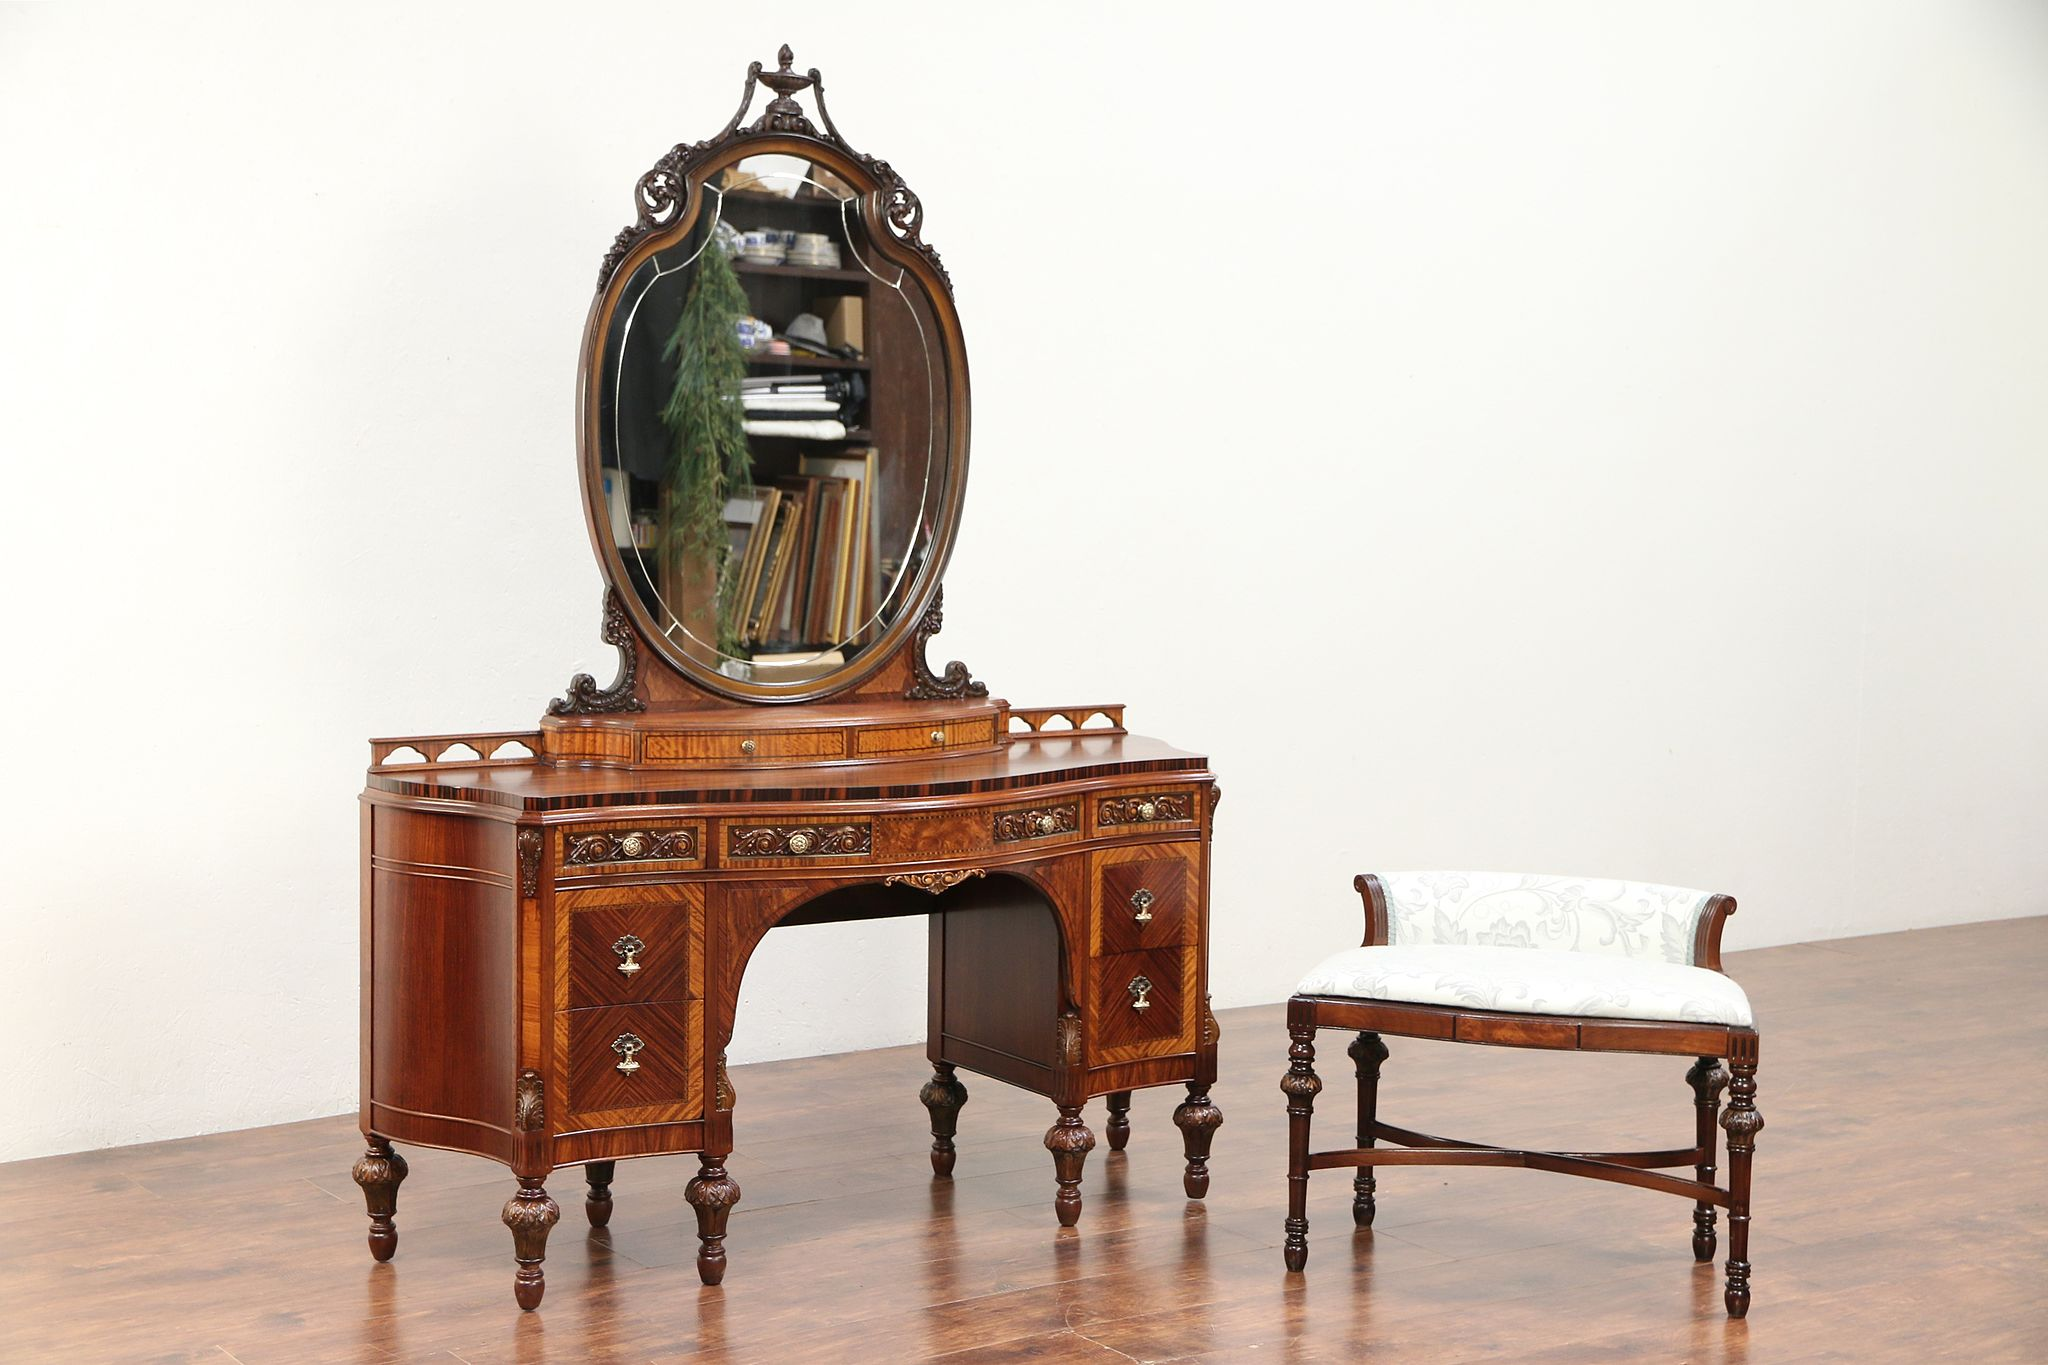 Pleasing Curved Antique Tall Vanity Mirror Chair Rosewood Banding Carving 29714 Gamerscity Chair Design For Home Gamerscityorg